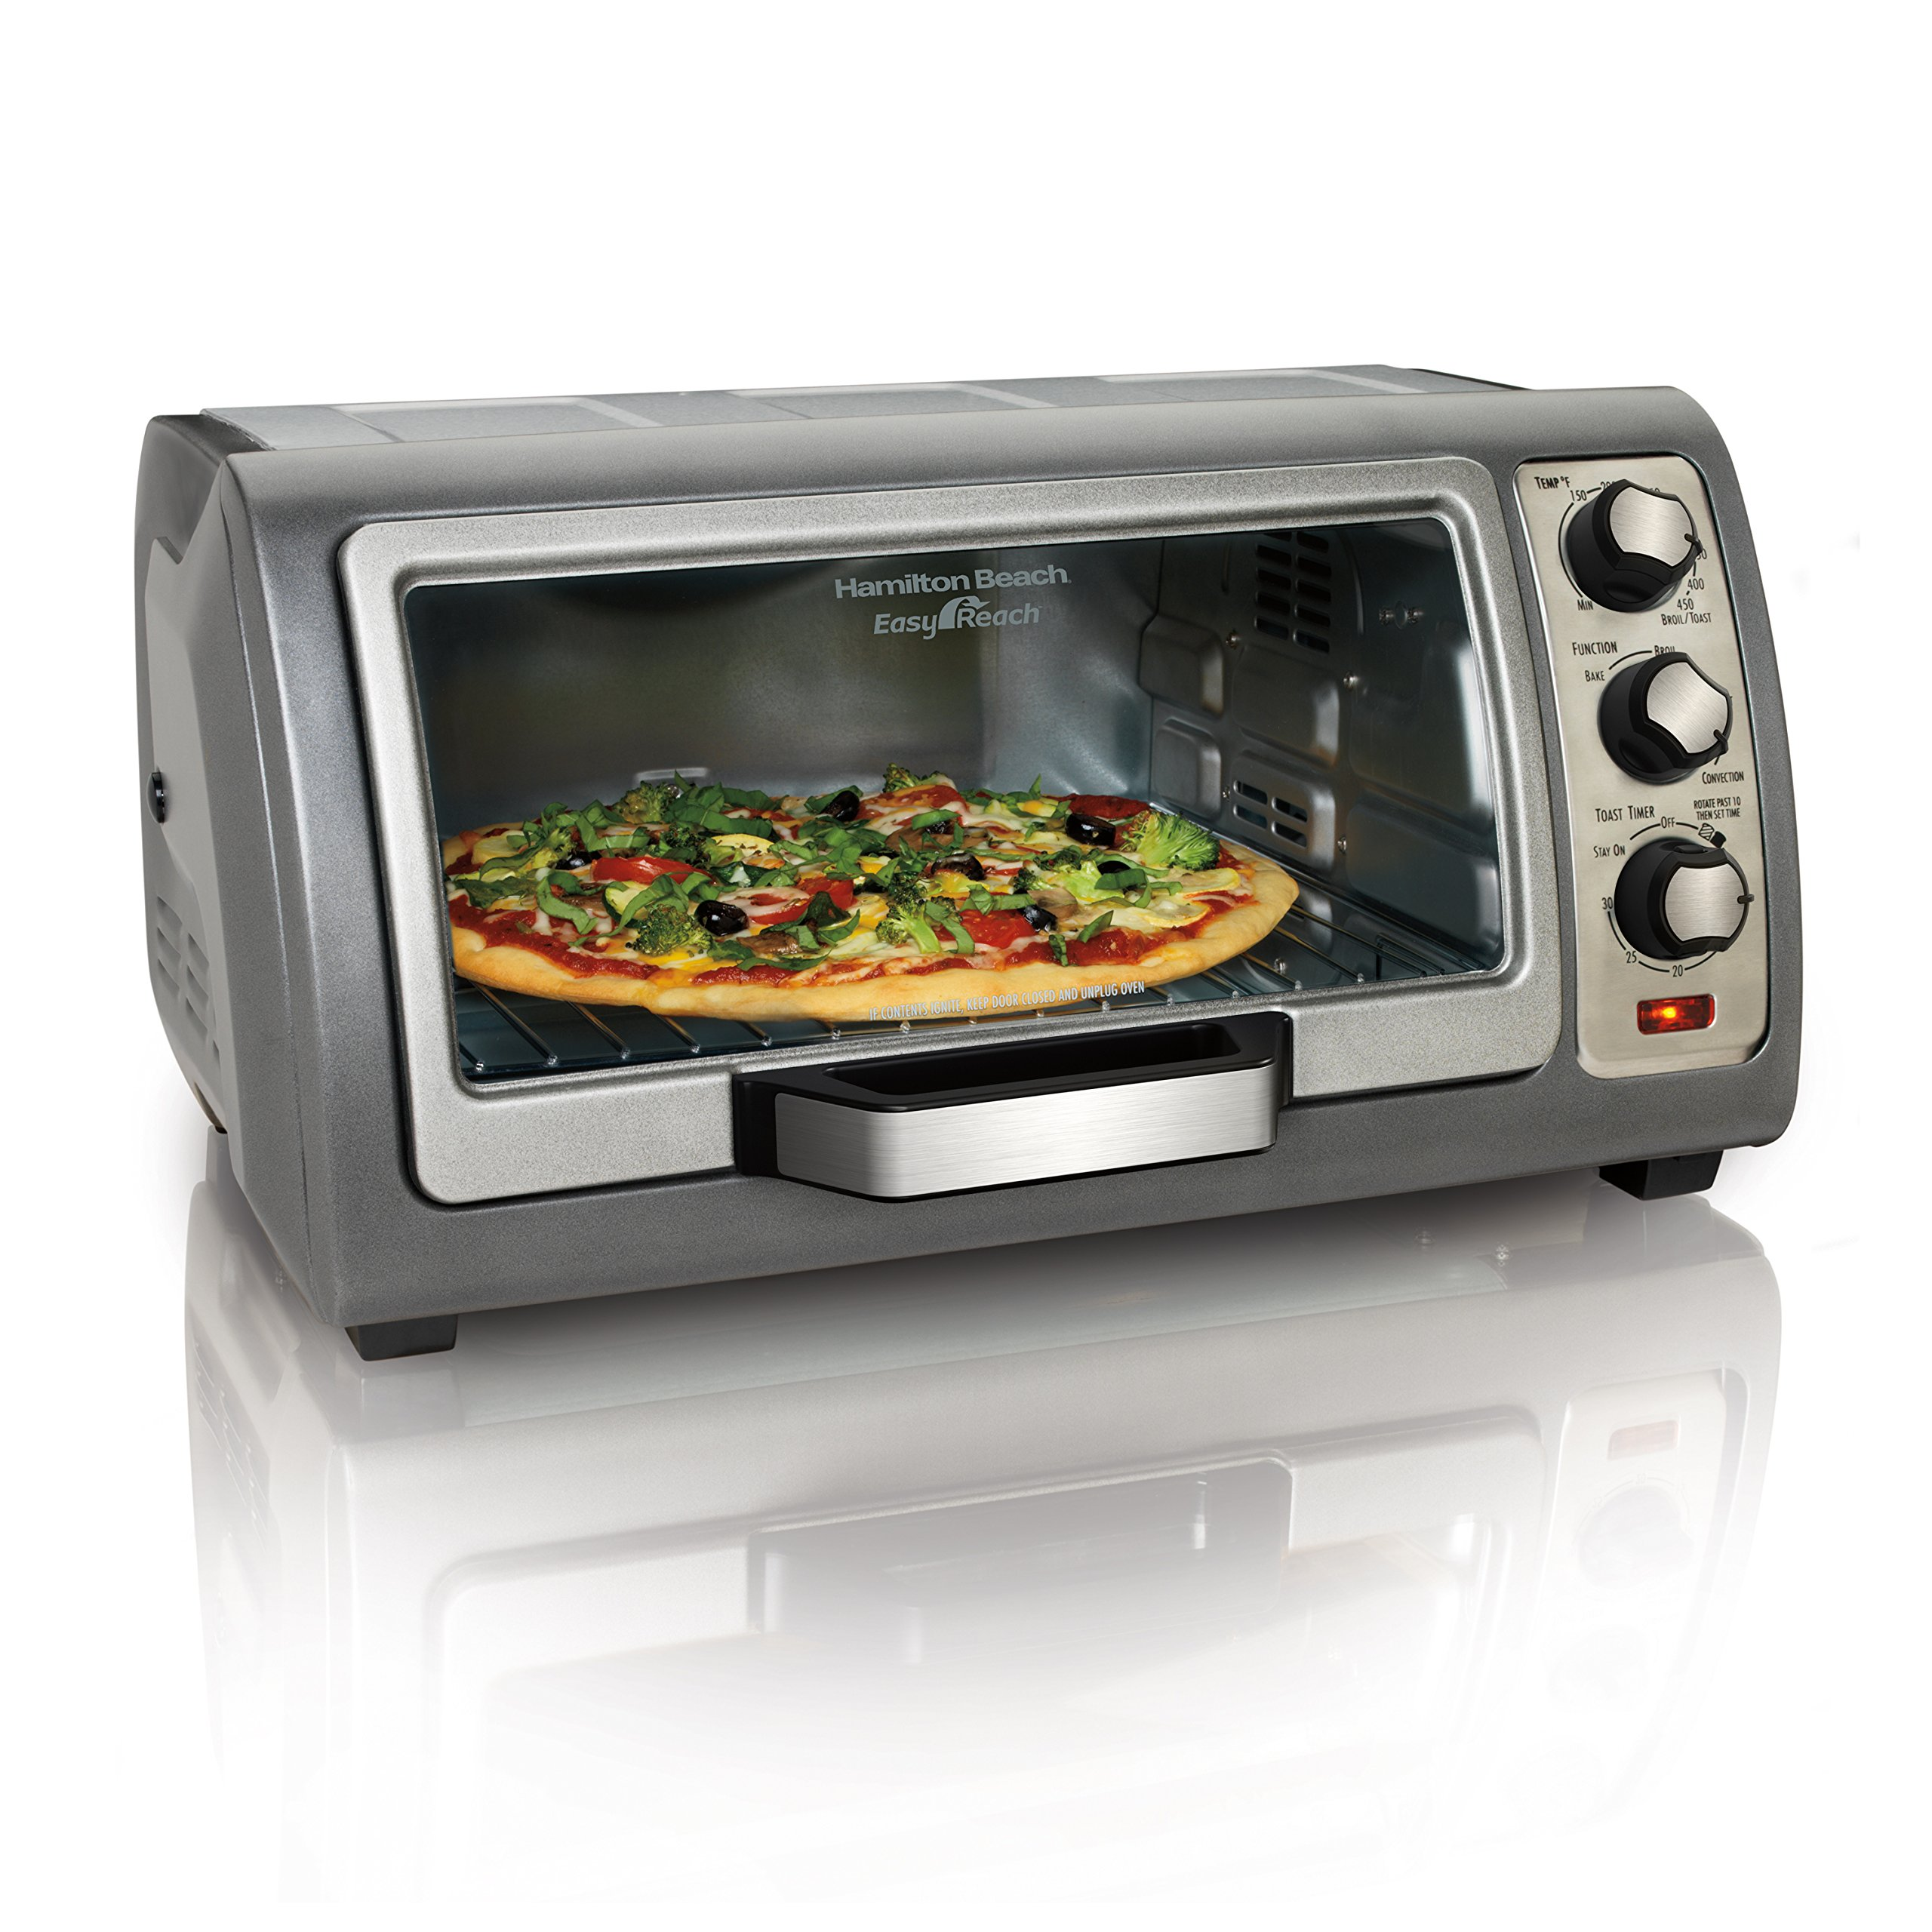 Hamilton Beach (31126) Toaster Oven, Convection Oven, Easy Reach by Hamilton Beach